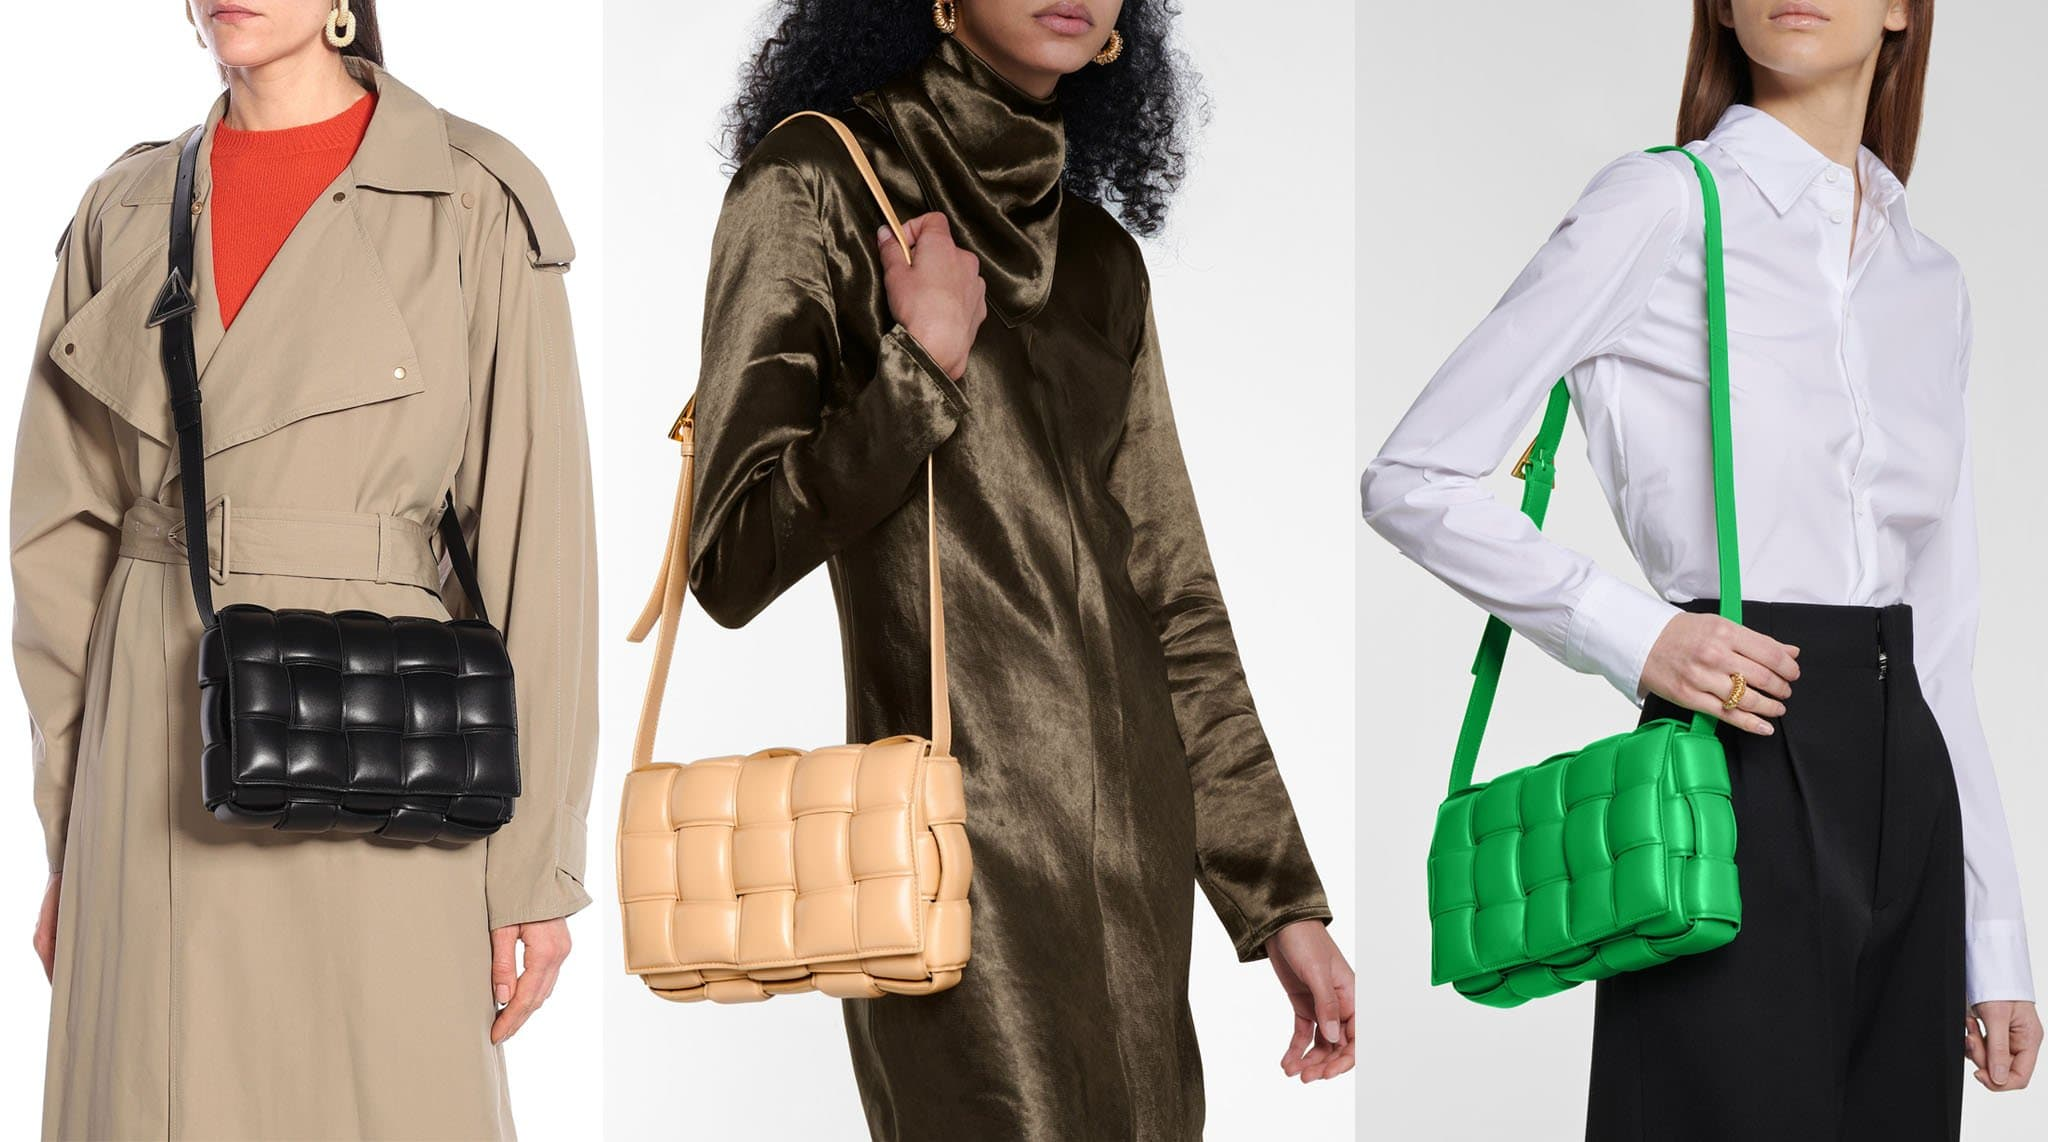 The now-iconic Cassette bag is famous for the padded interpretation of the house's intrecciato finish